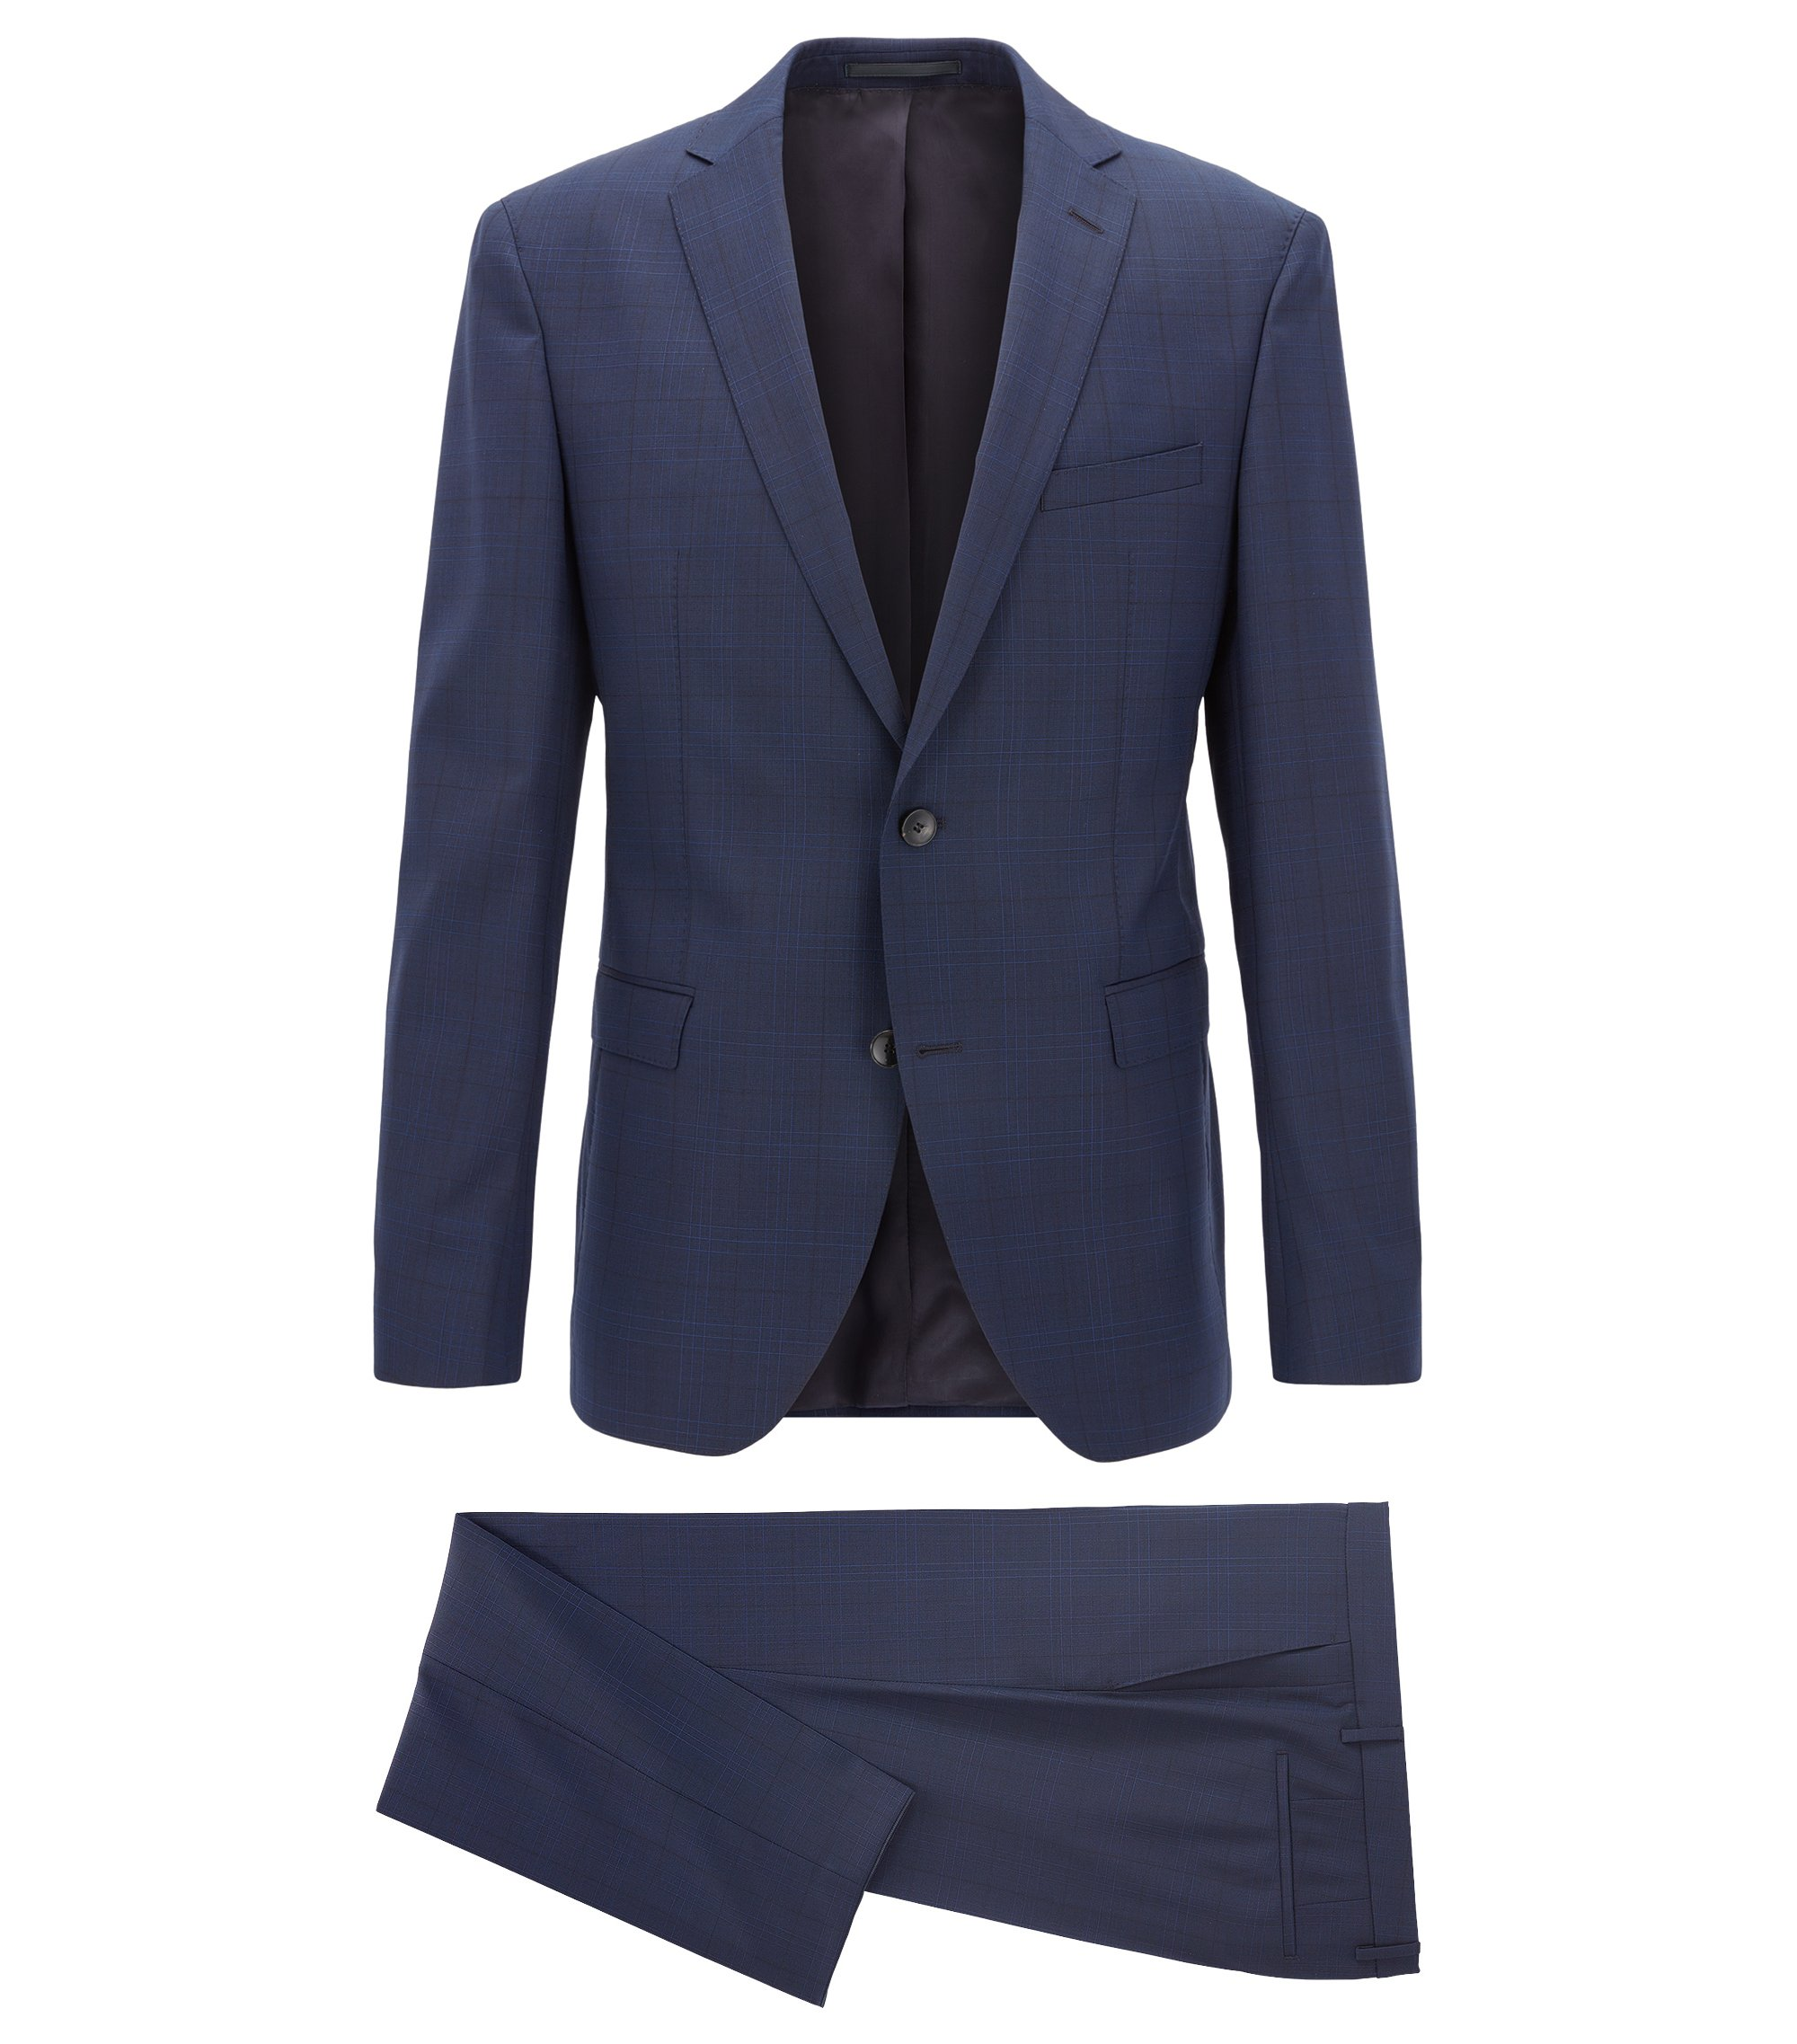 Virgin Wool Suit, Extra Slim Fit | Reyno/Wave, Dark Blue